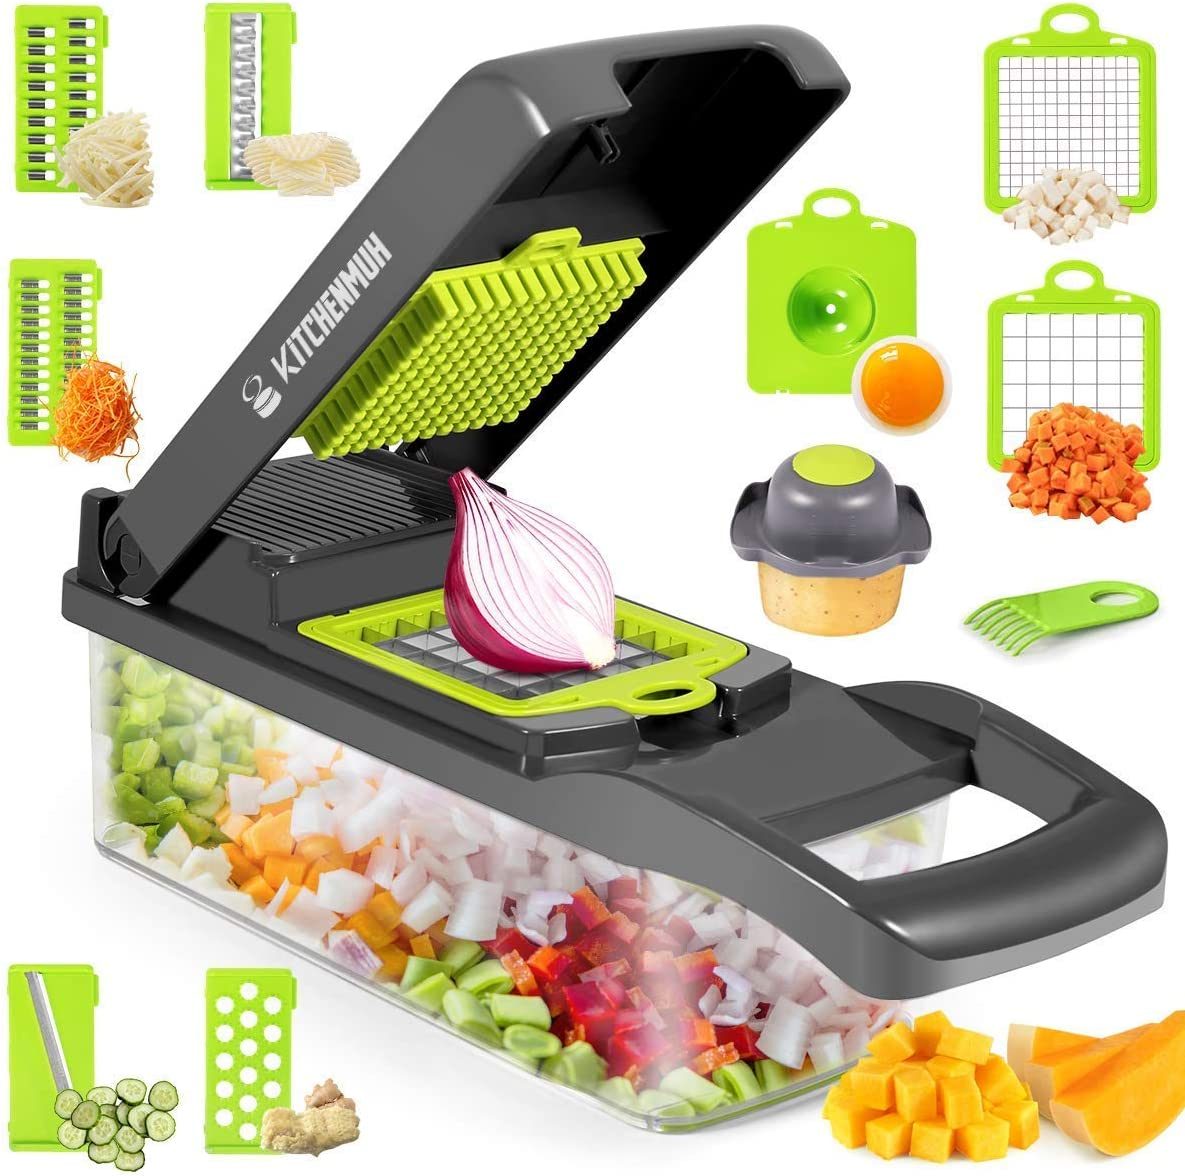 Amazon.com: Vegetable Choppers, Onion Chopper, 12 in 1 Vegetable Cutter,  Pro Slicer Dicer, Cutter, Manual Slicer, Mandolin Chopper with Container  (Grey+White): Kitchen & Dining